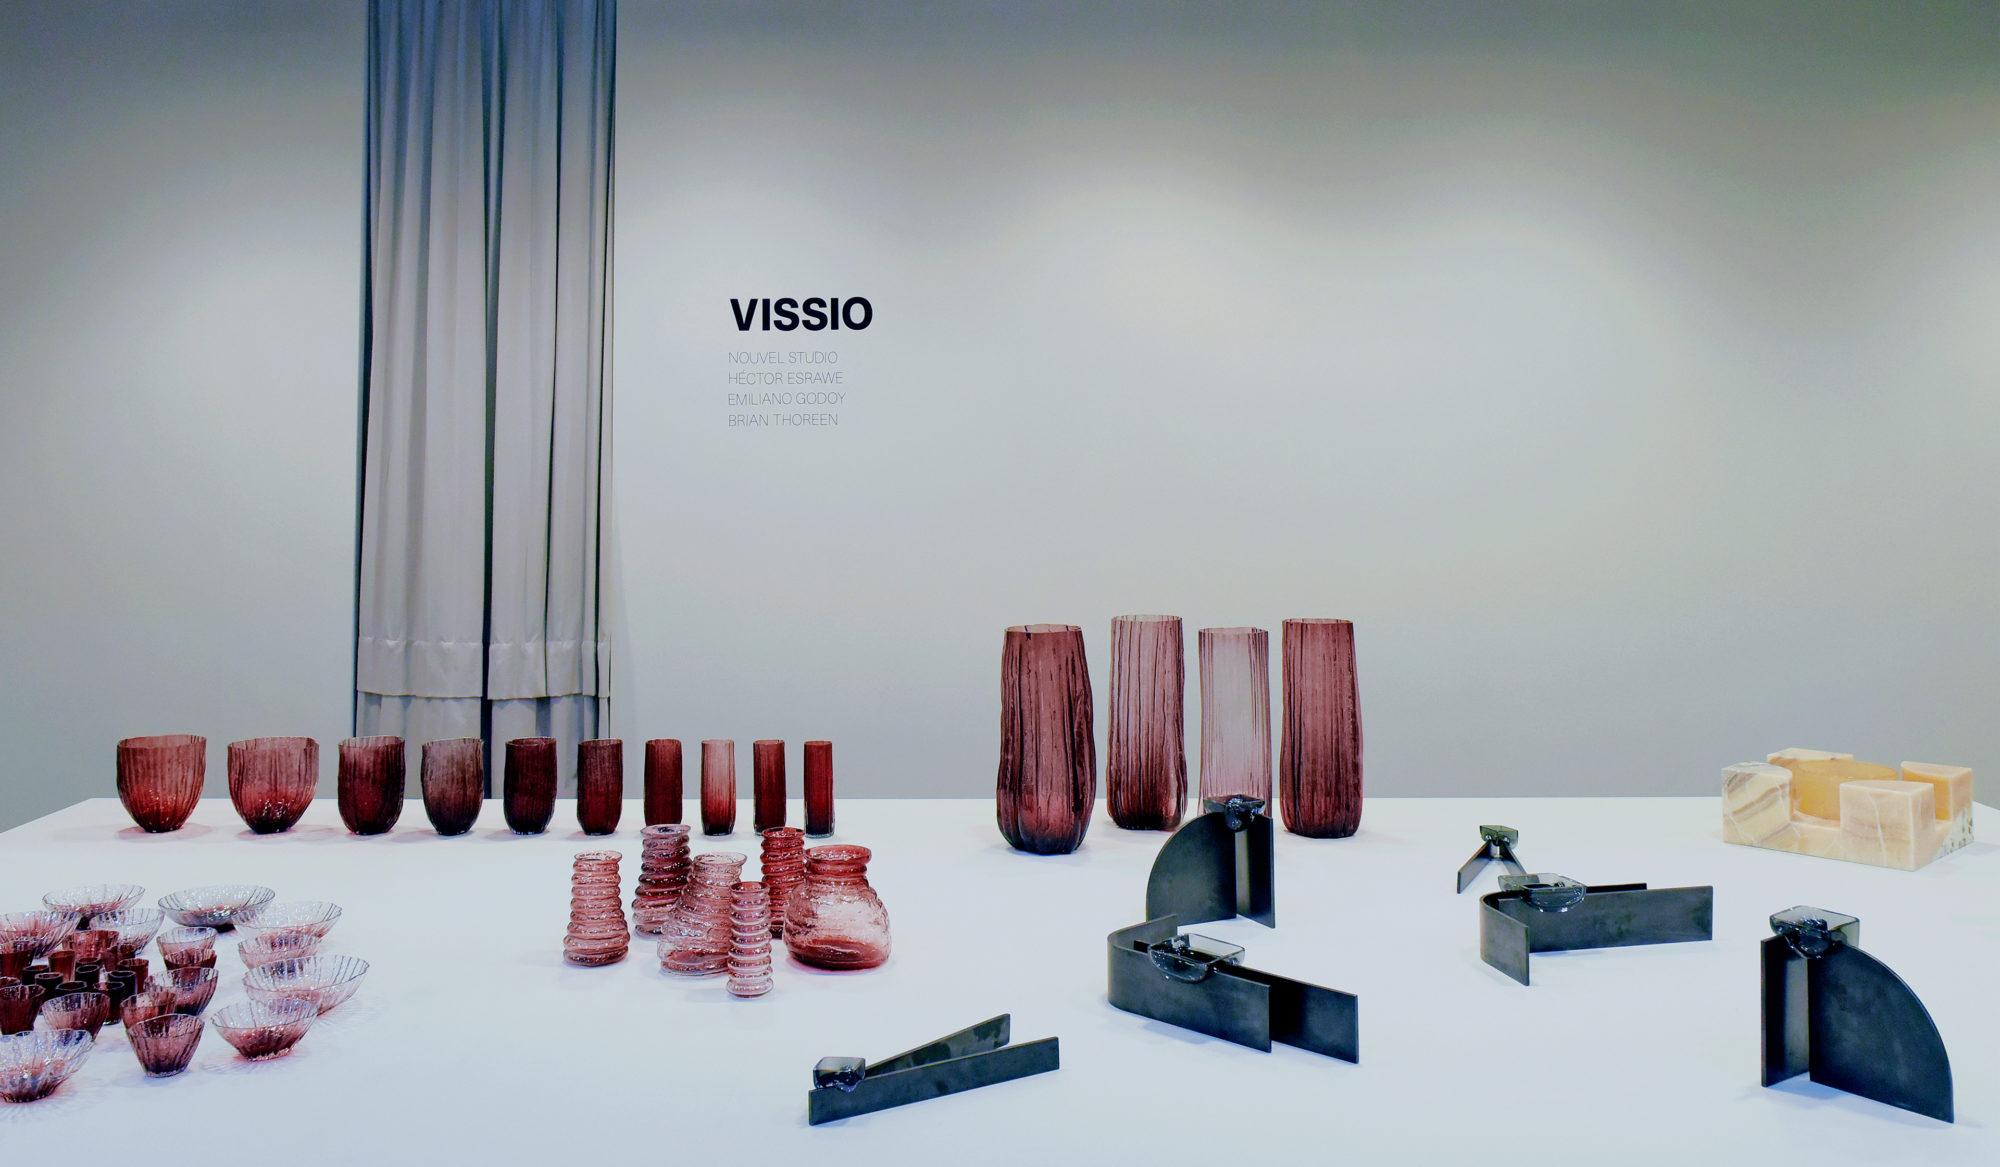 Full collection by Vissio at Zona Maco 2019